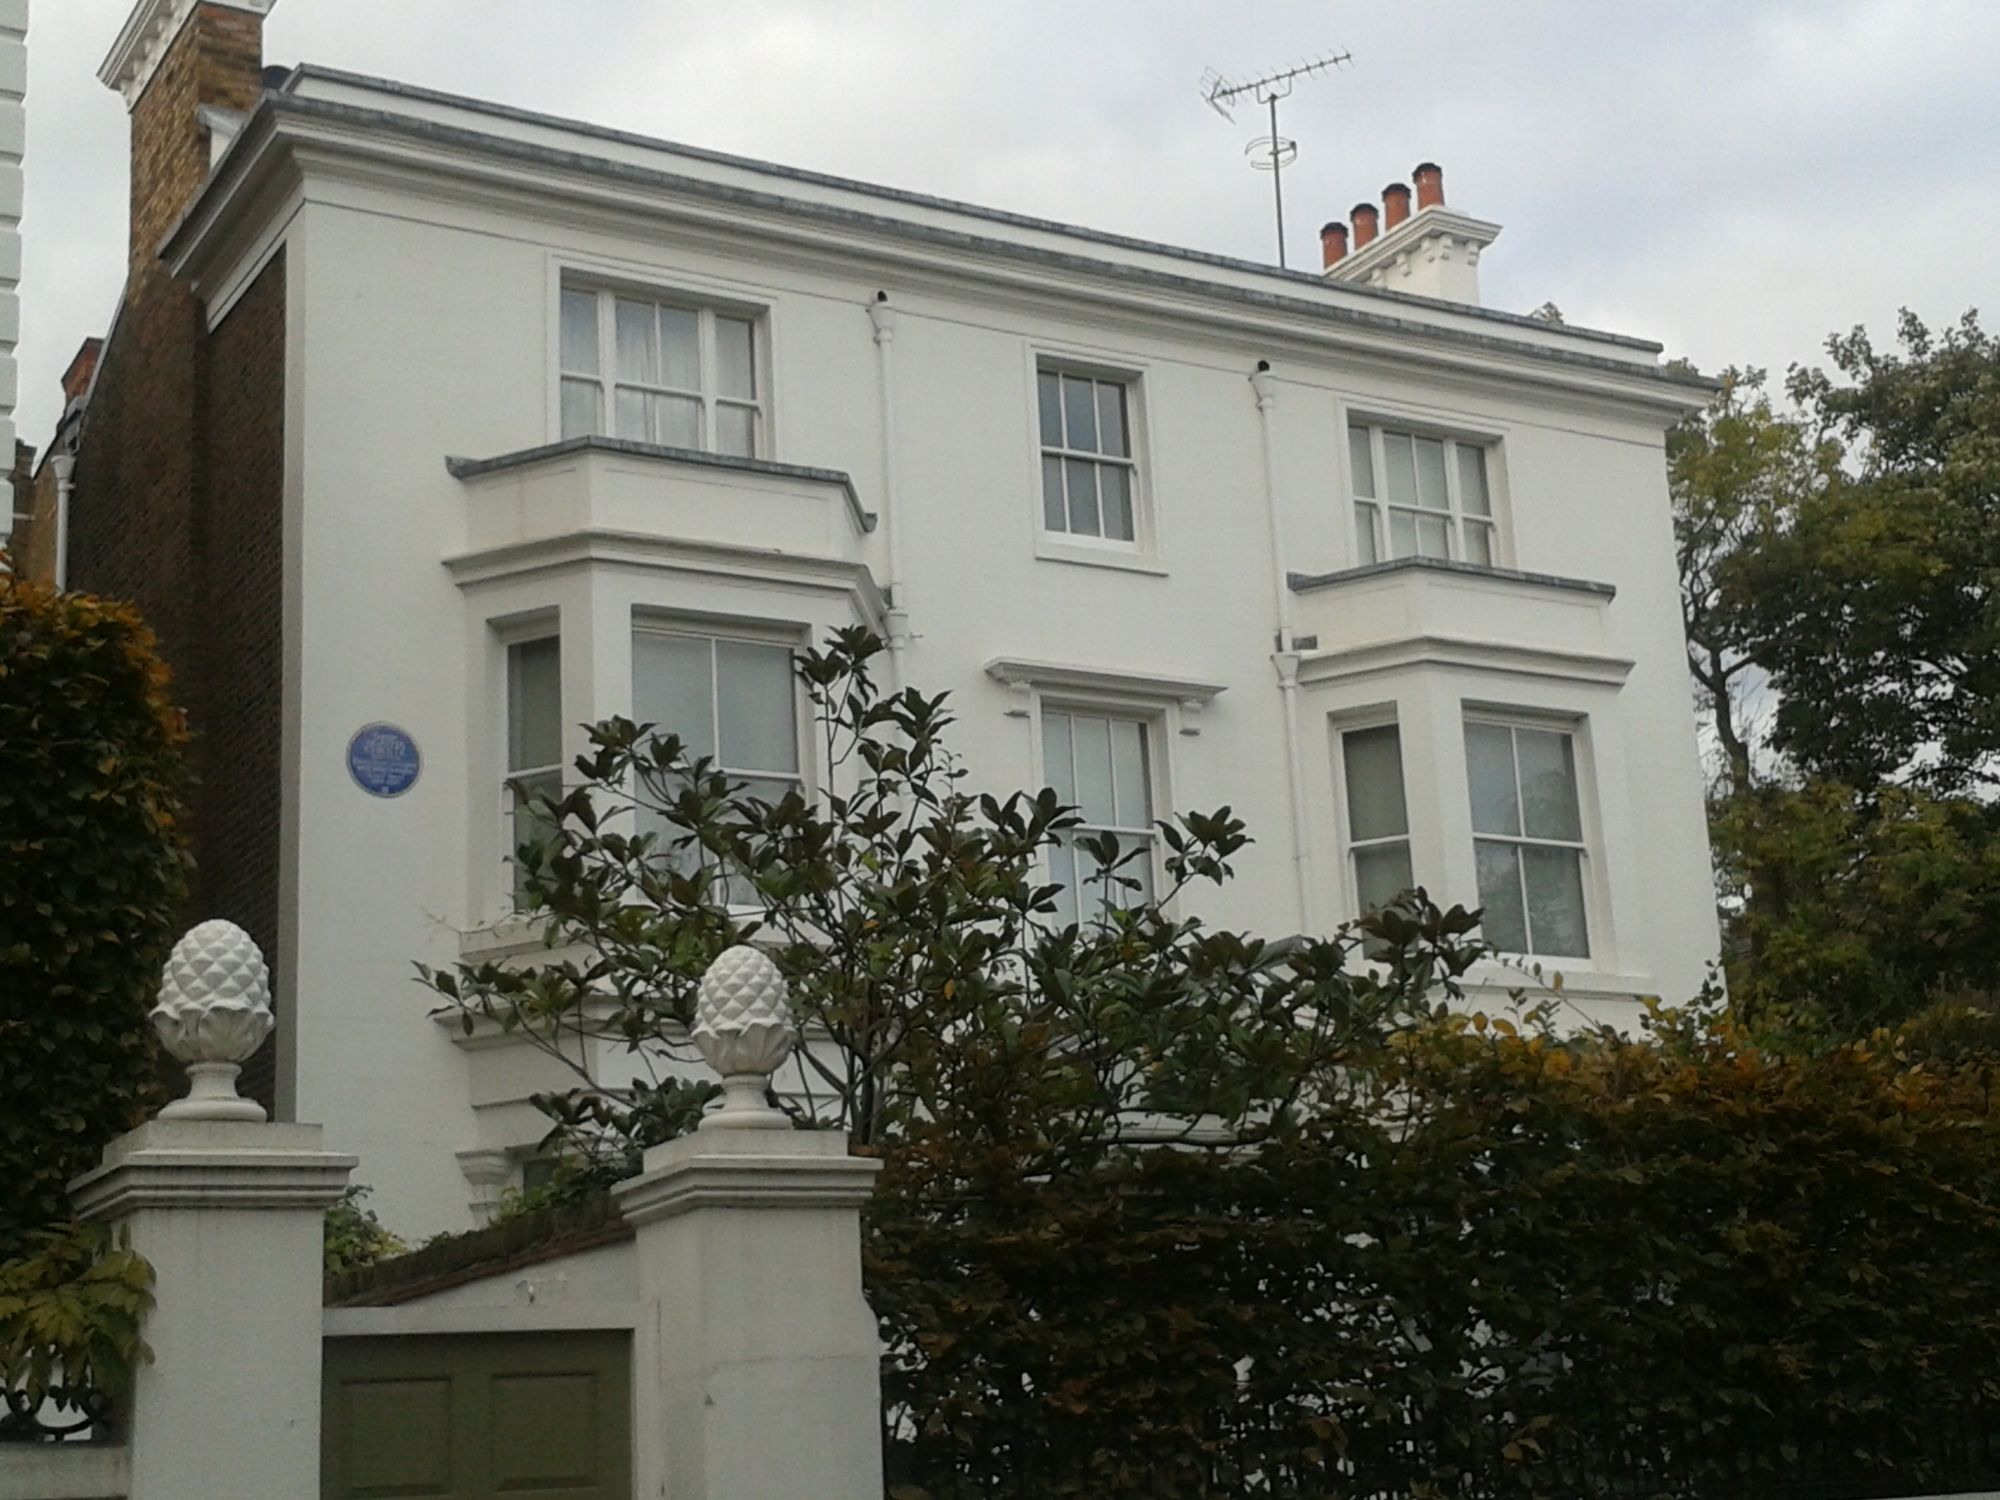 Photo of one of Agatha Christie's former London homes. A large detached house. There is a Blue Plaque commemorating Agatha on the left handside, next to a large bay window. The house is double fronted with and painted white. In the foreground is the front garden, with shrubs and plants.